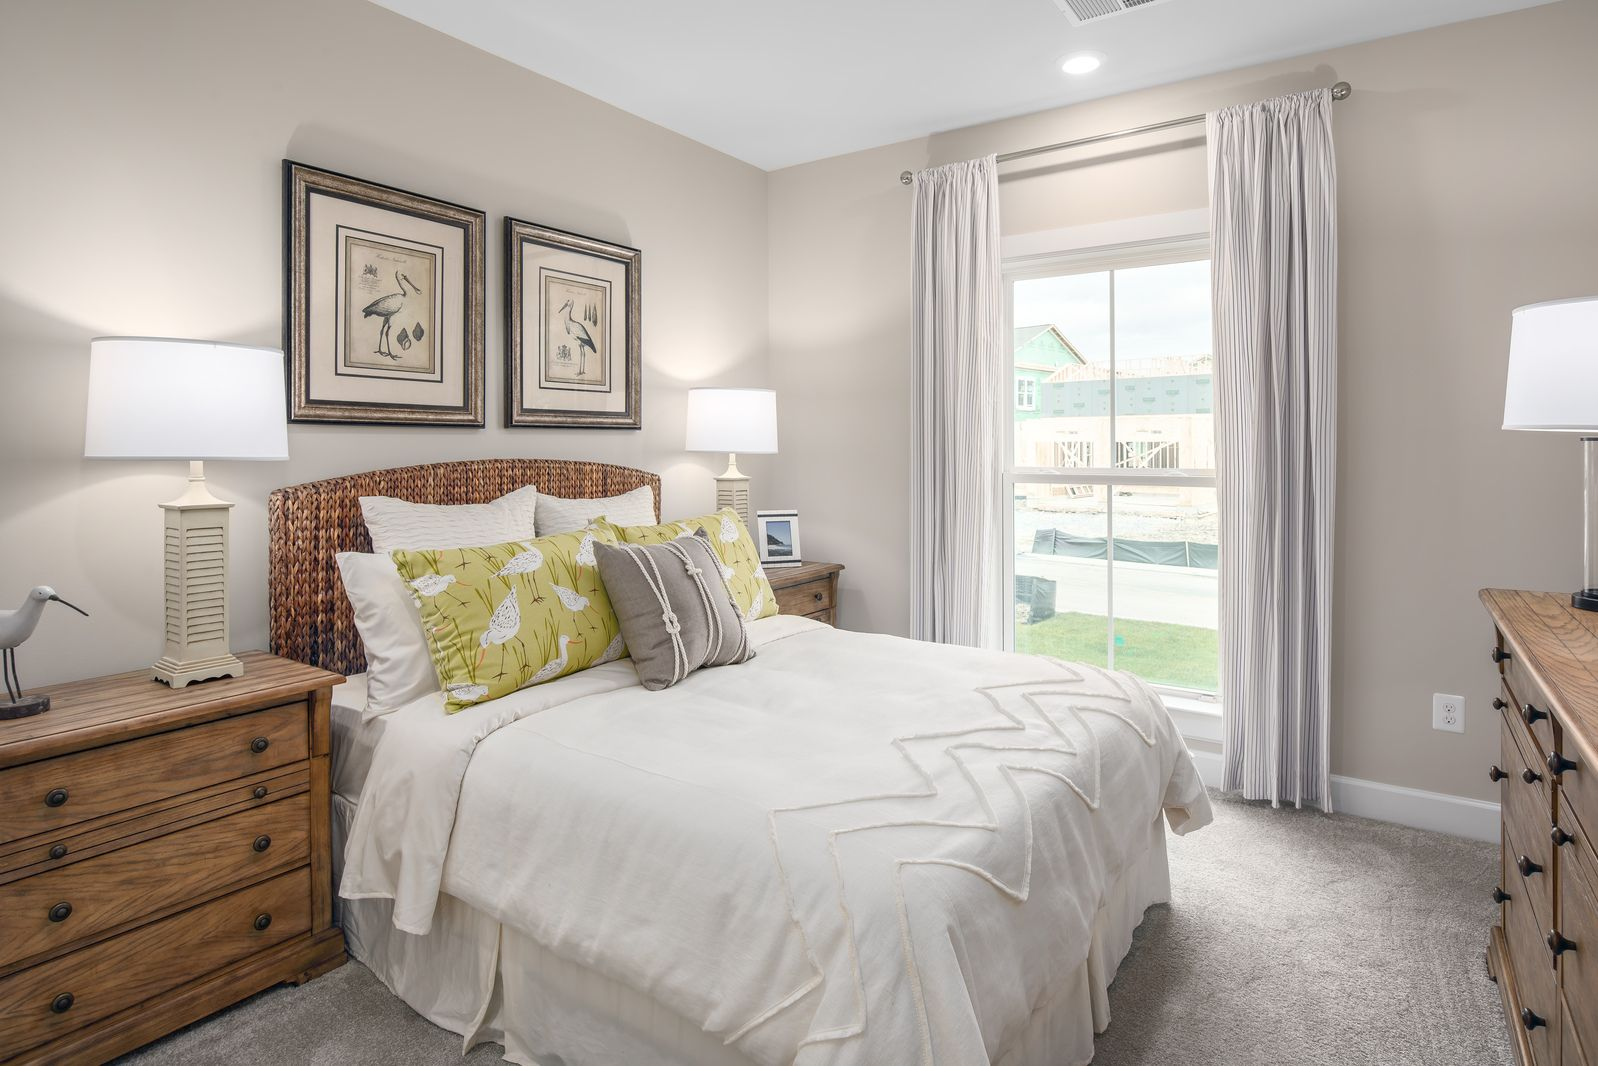 Bedroom featured in the Bryn Mawr By NVHomes in Philadelphia, PA